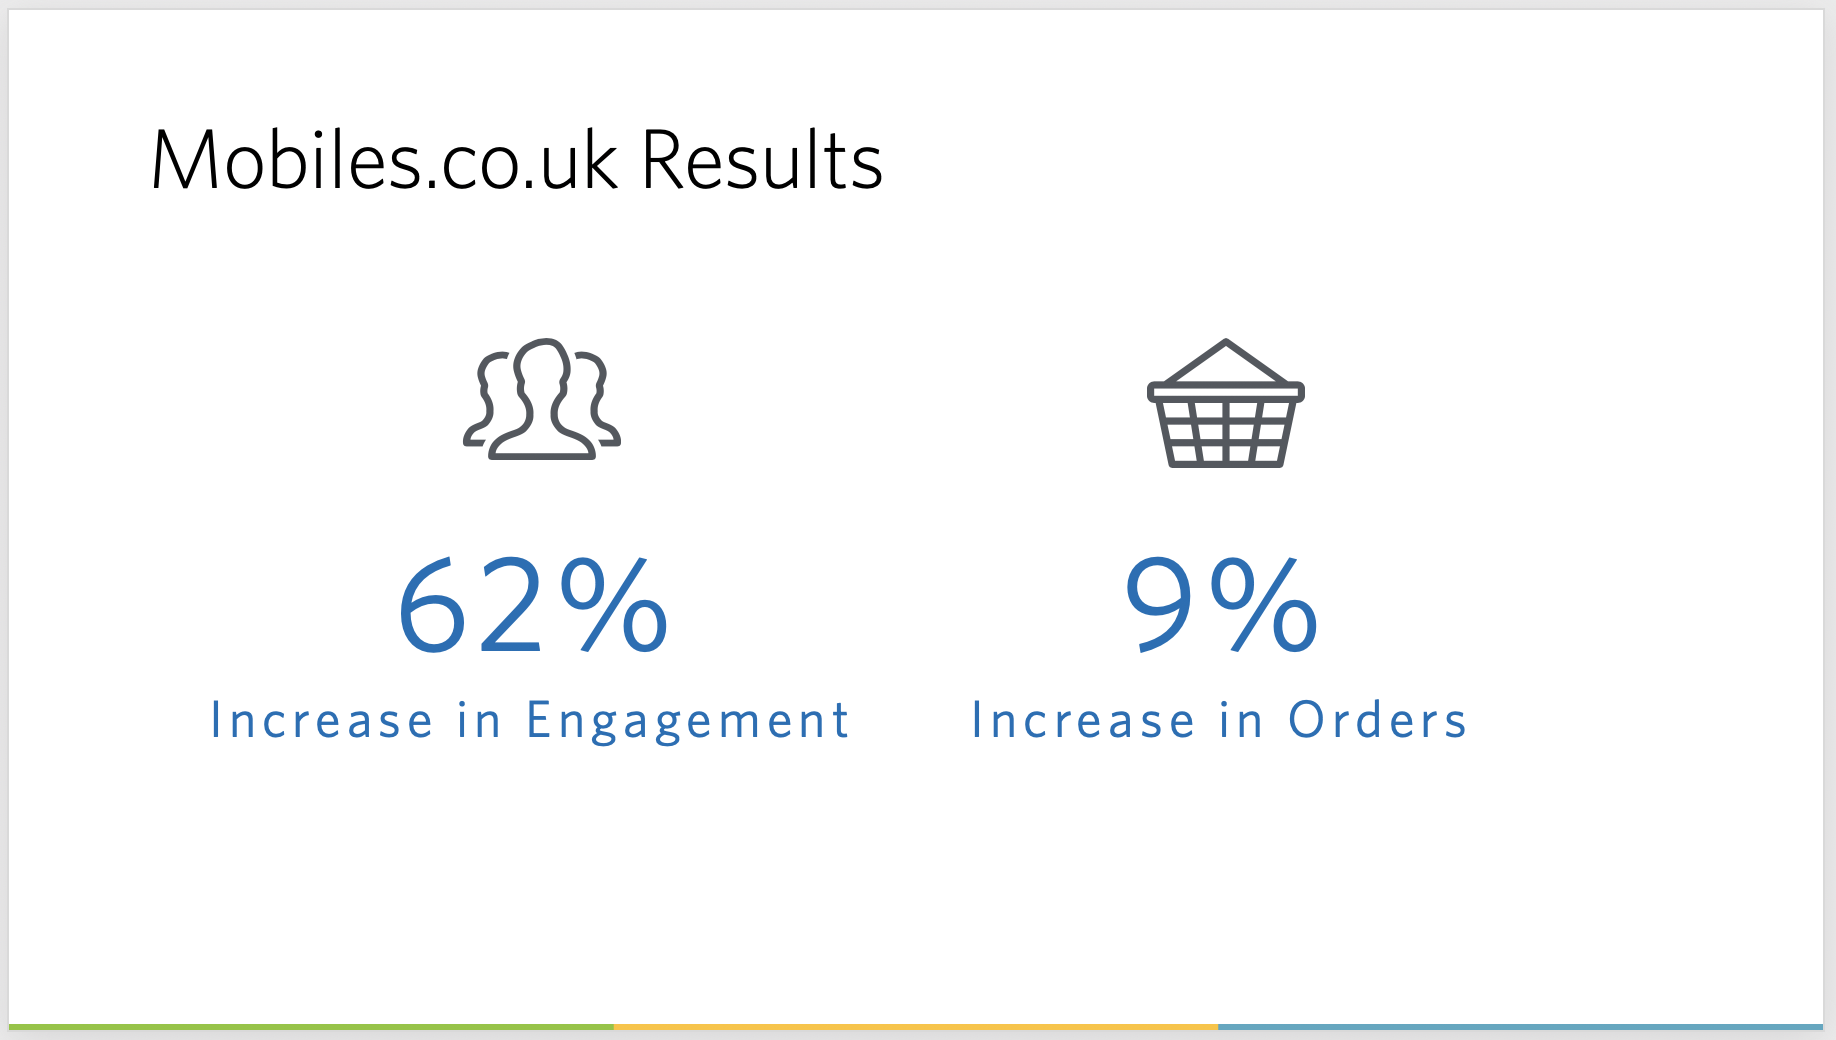 Mobiles.co.uk presentation results